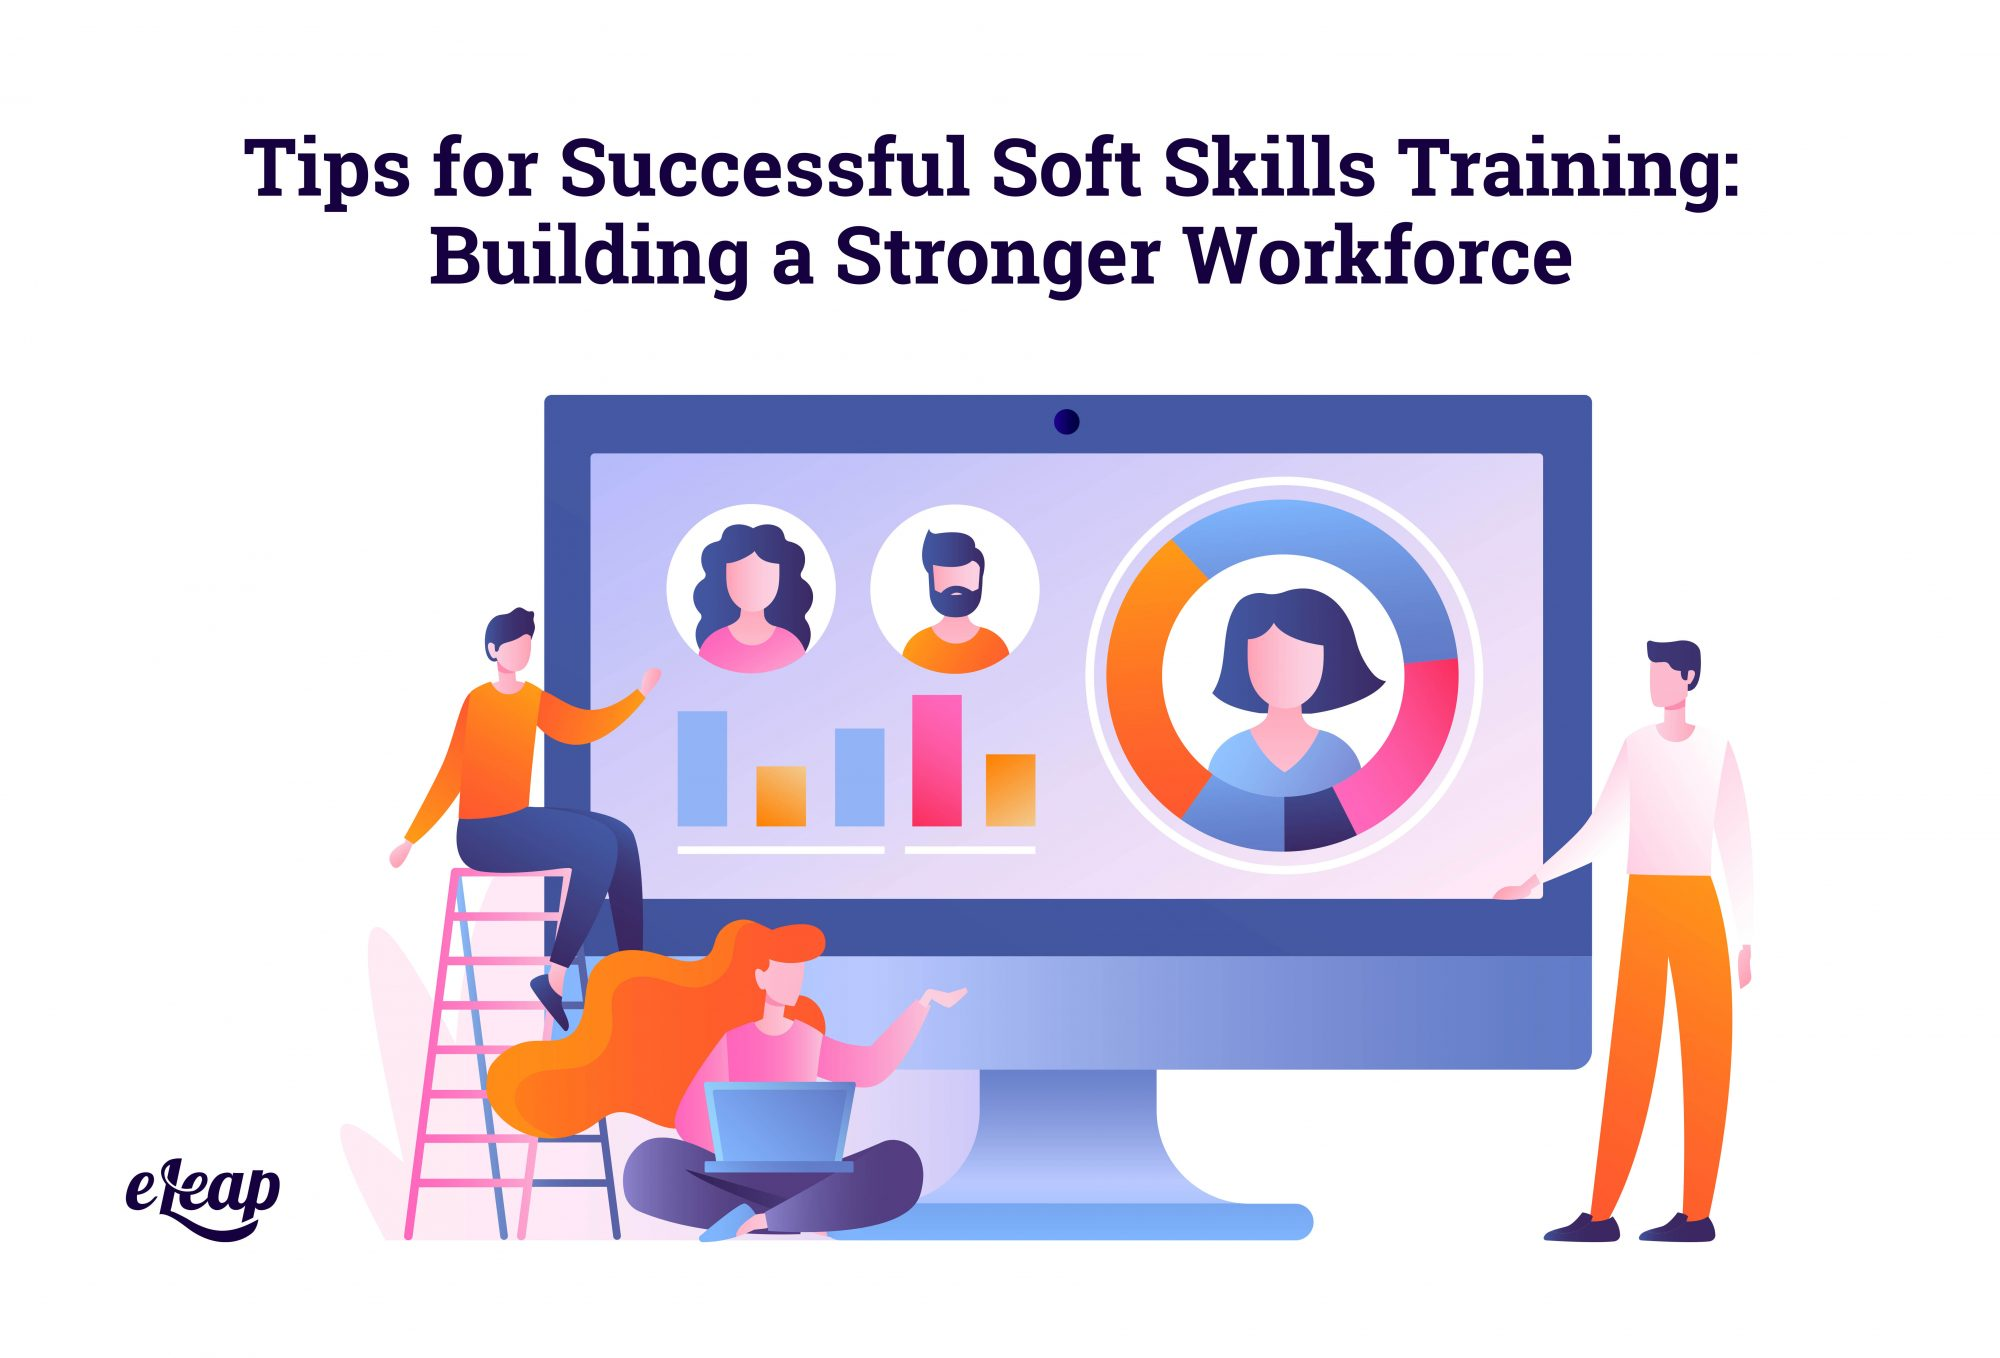 Tips for Successful Soft Skills Training: Building a Stronger Workforce